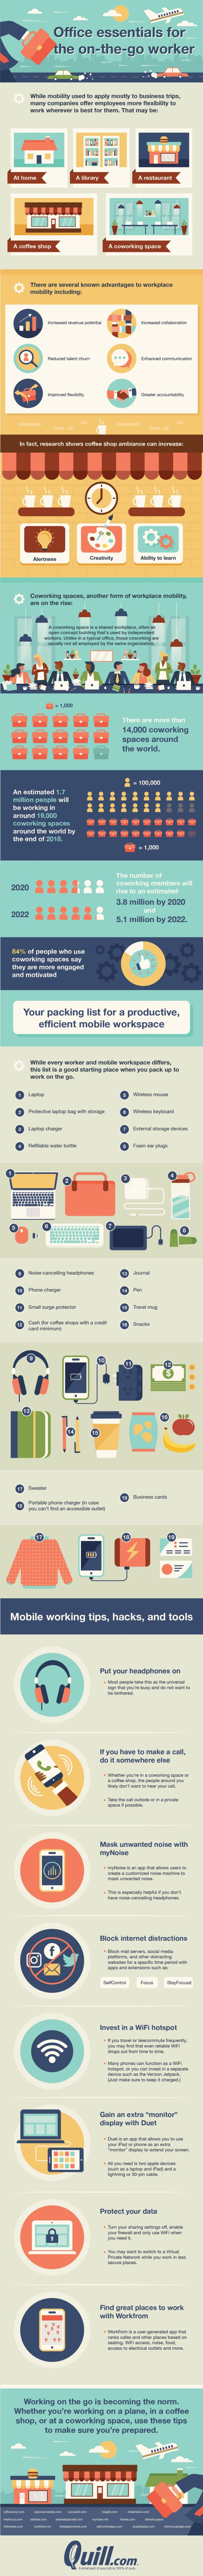 Office essentials for the on-the-go worker